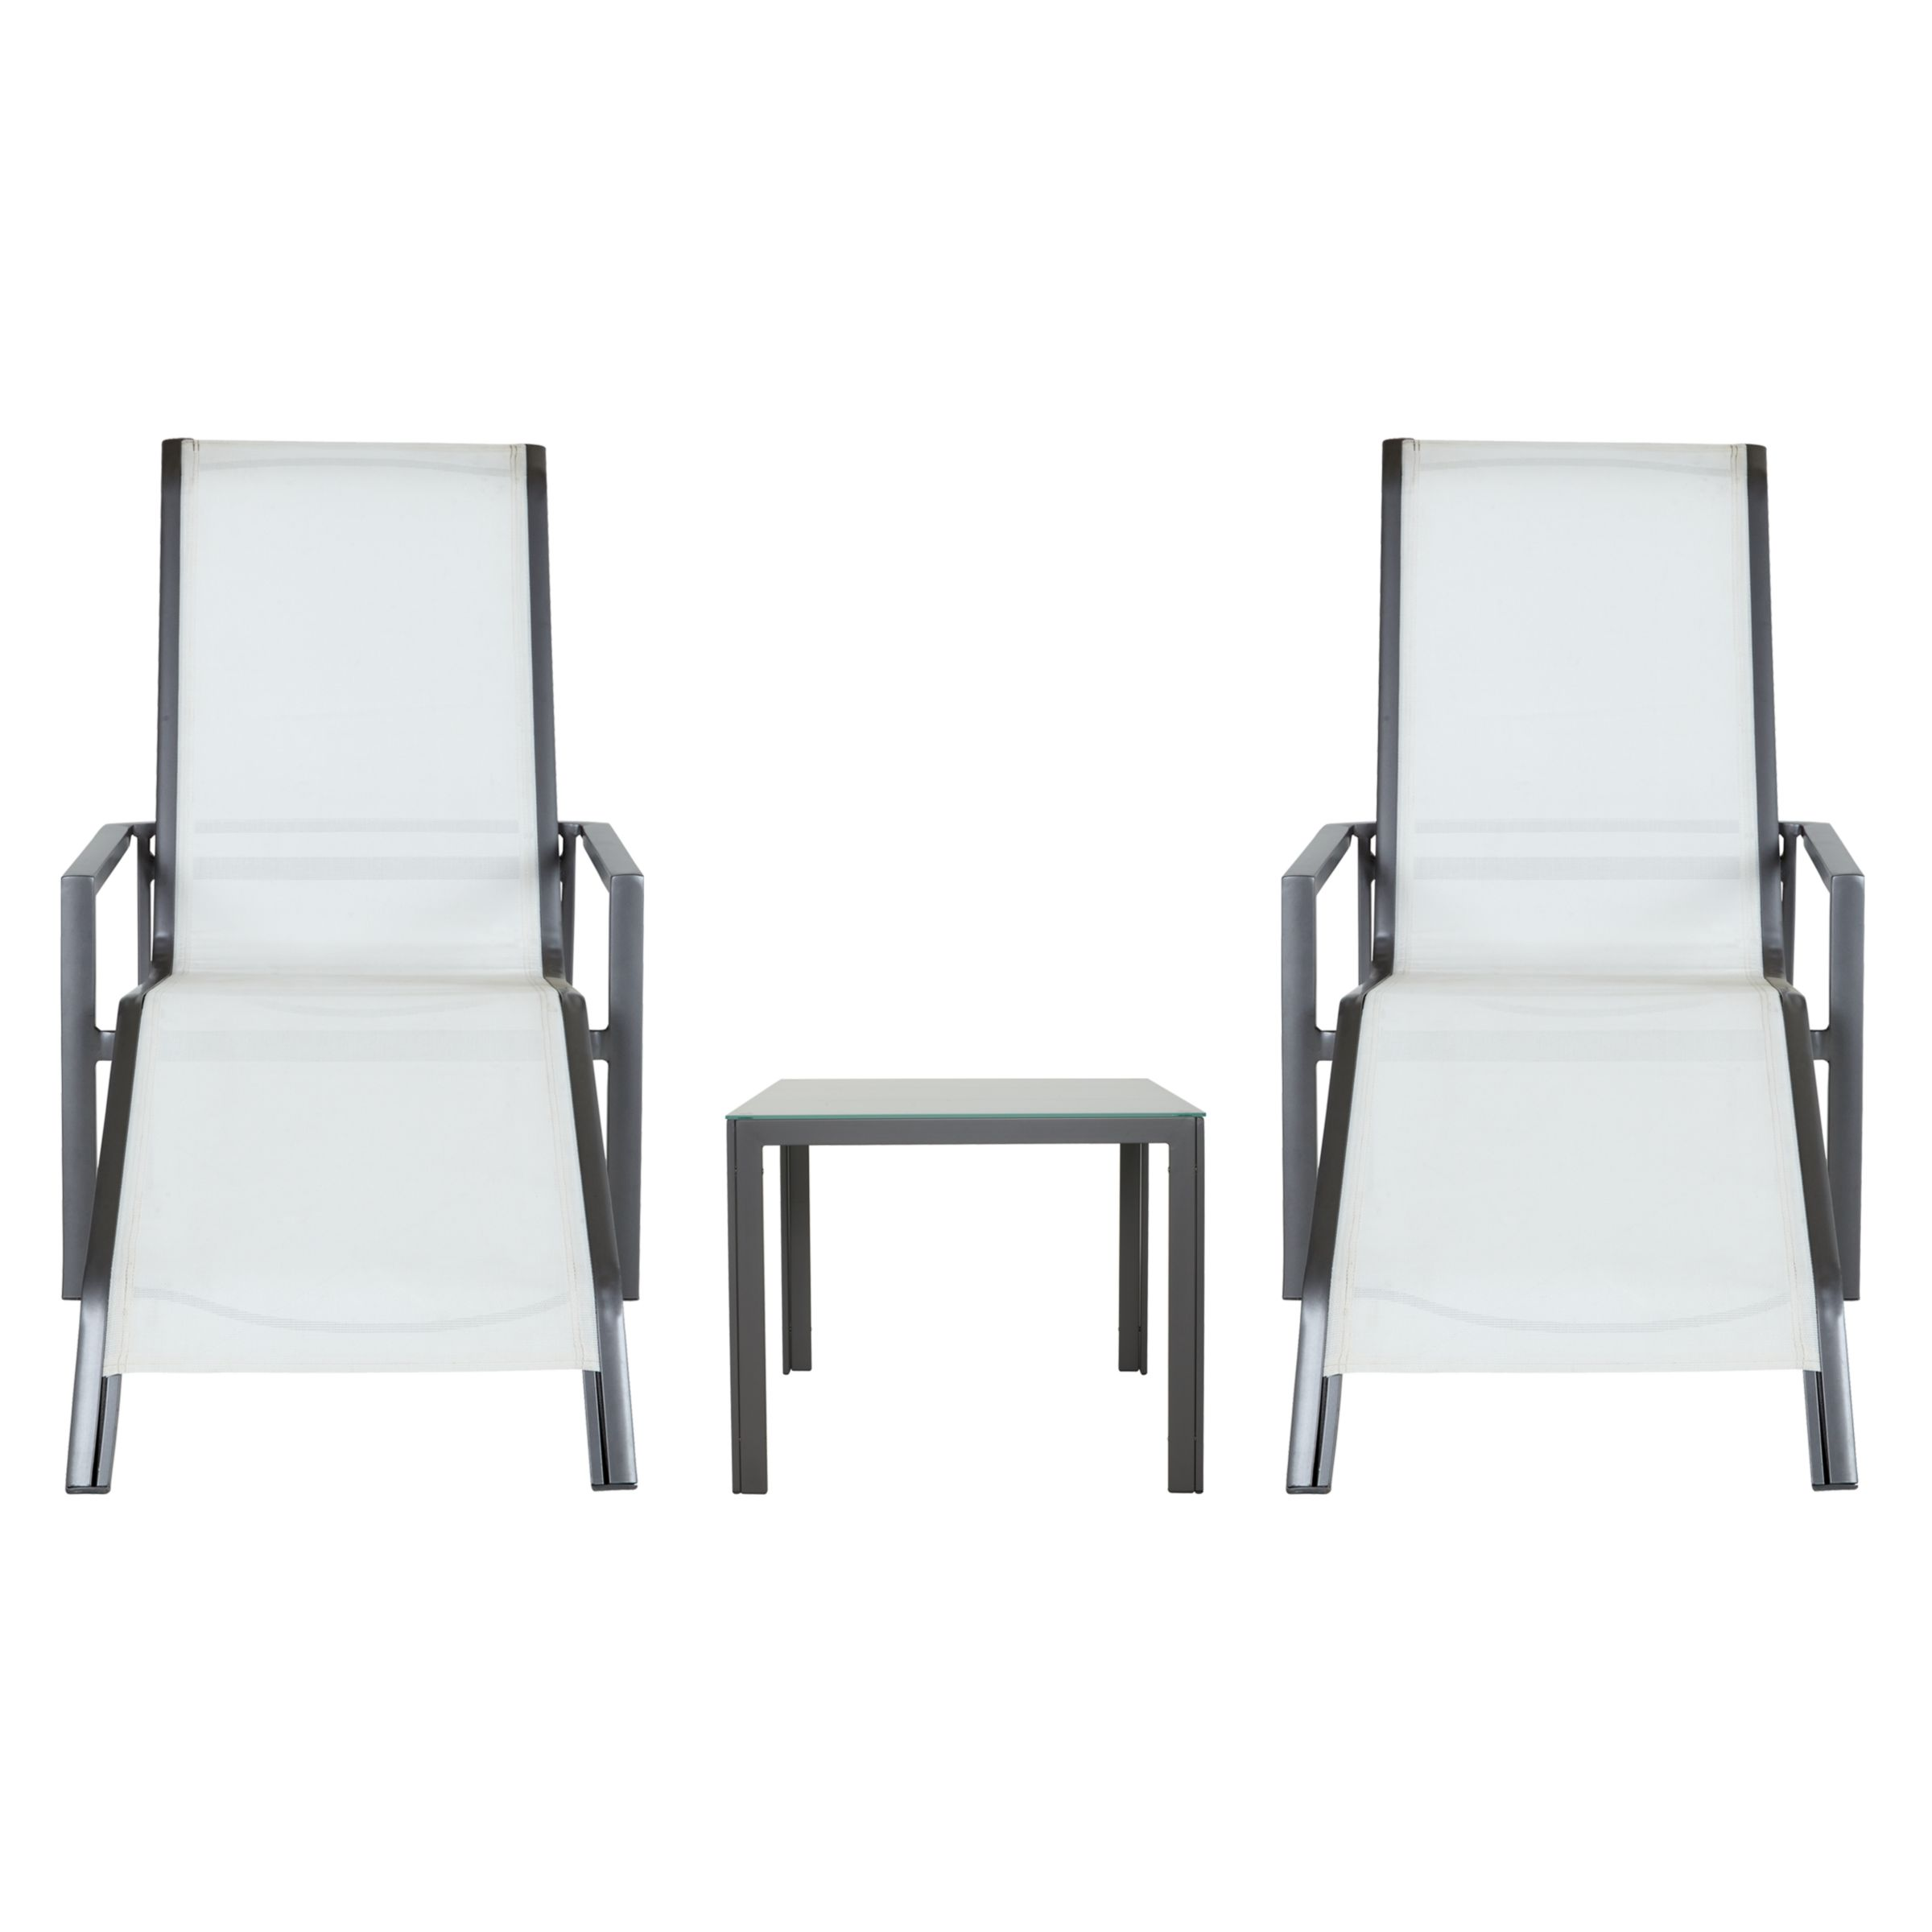 John Lewis Milo Sunlounger and Side Table, Set of 2